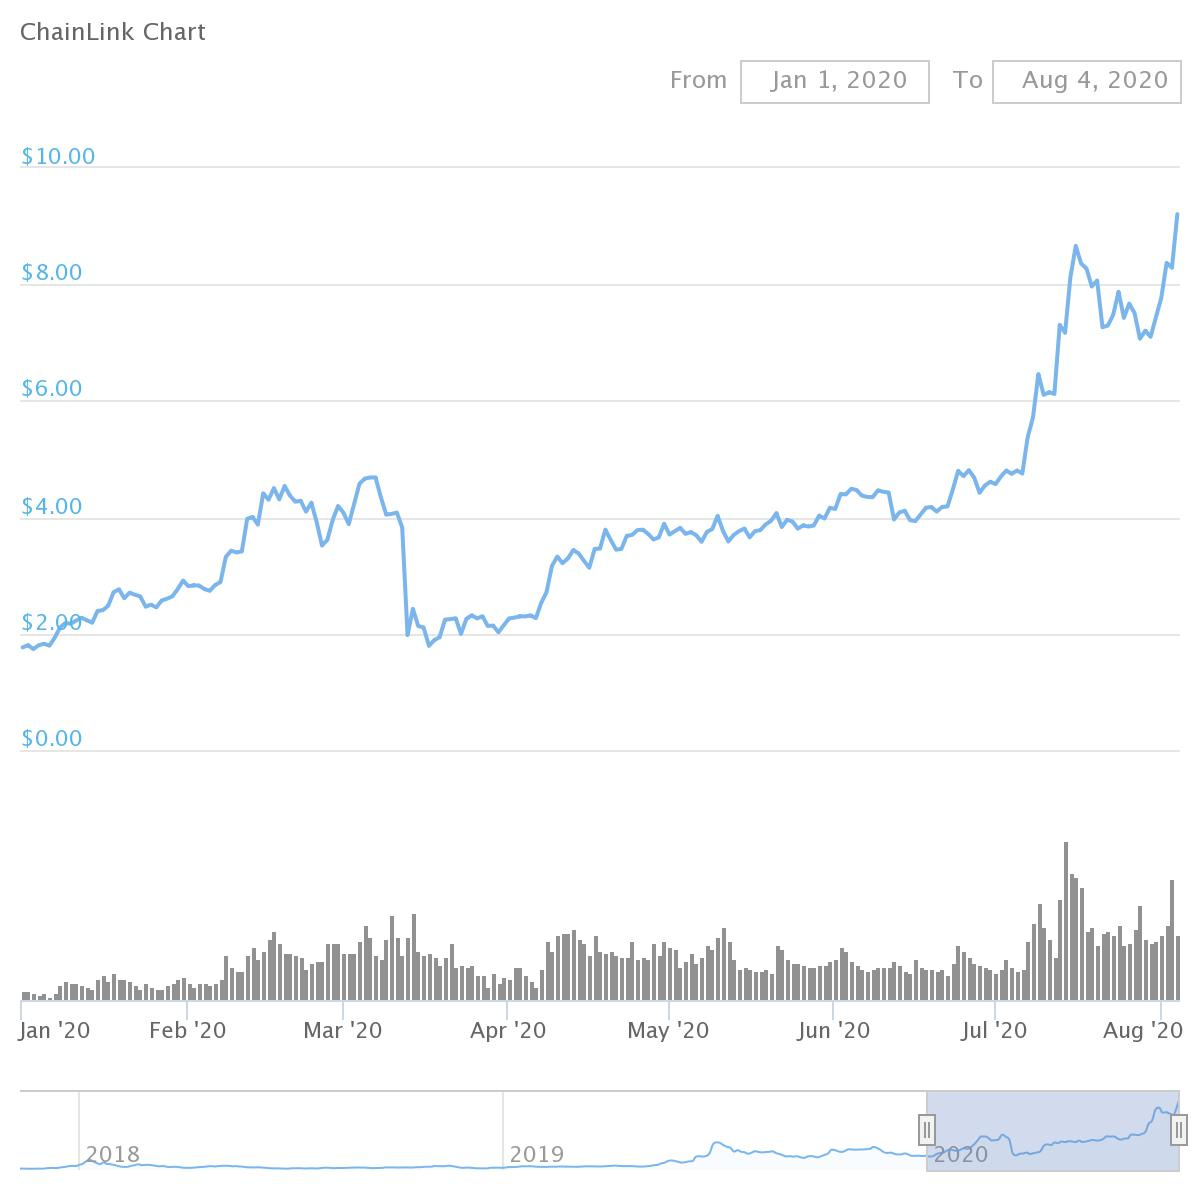 Chainlink Price Prediction 2020 - How High Will LINK Reach?